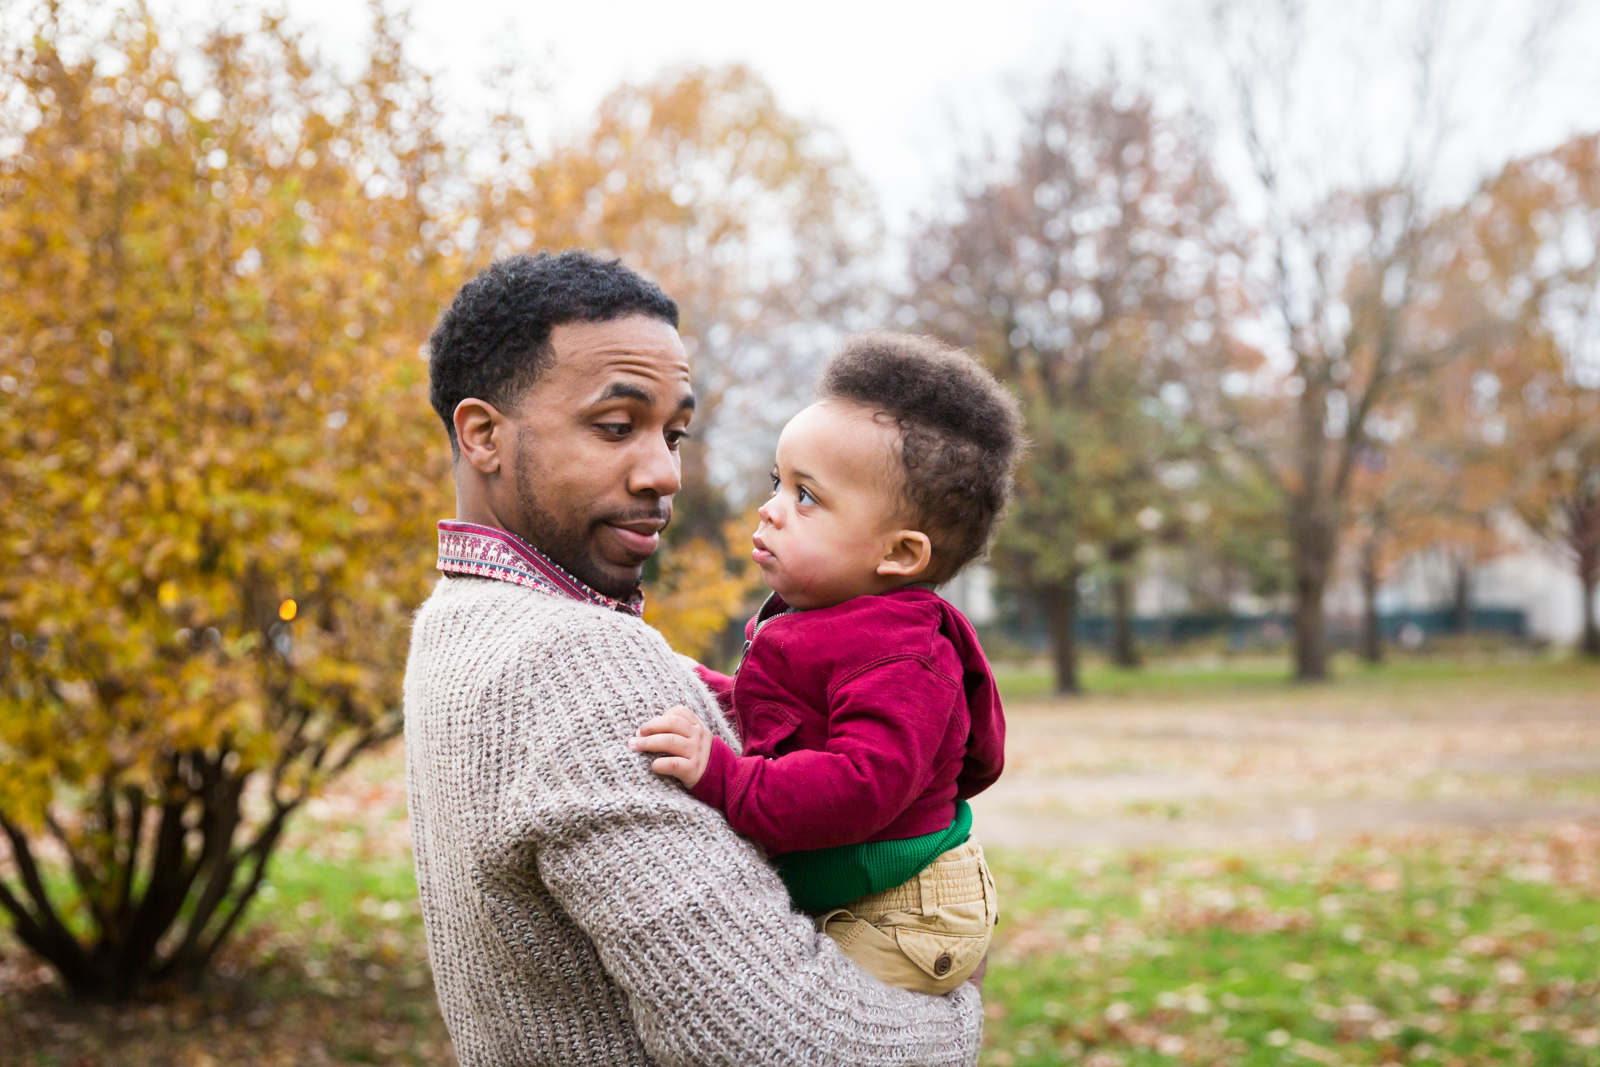 Flushing Meadows Corona Park family portrait of father and son looking at each other